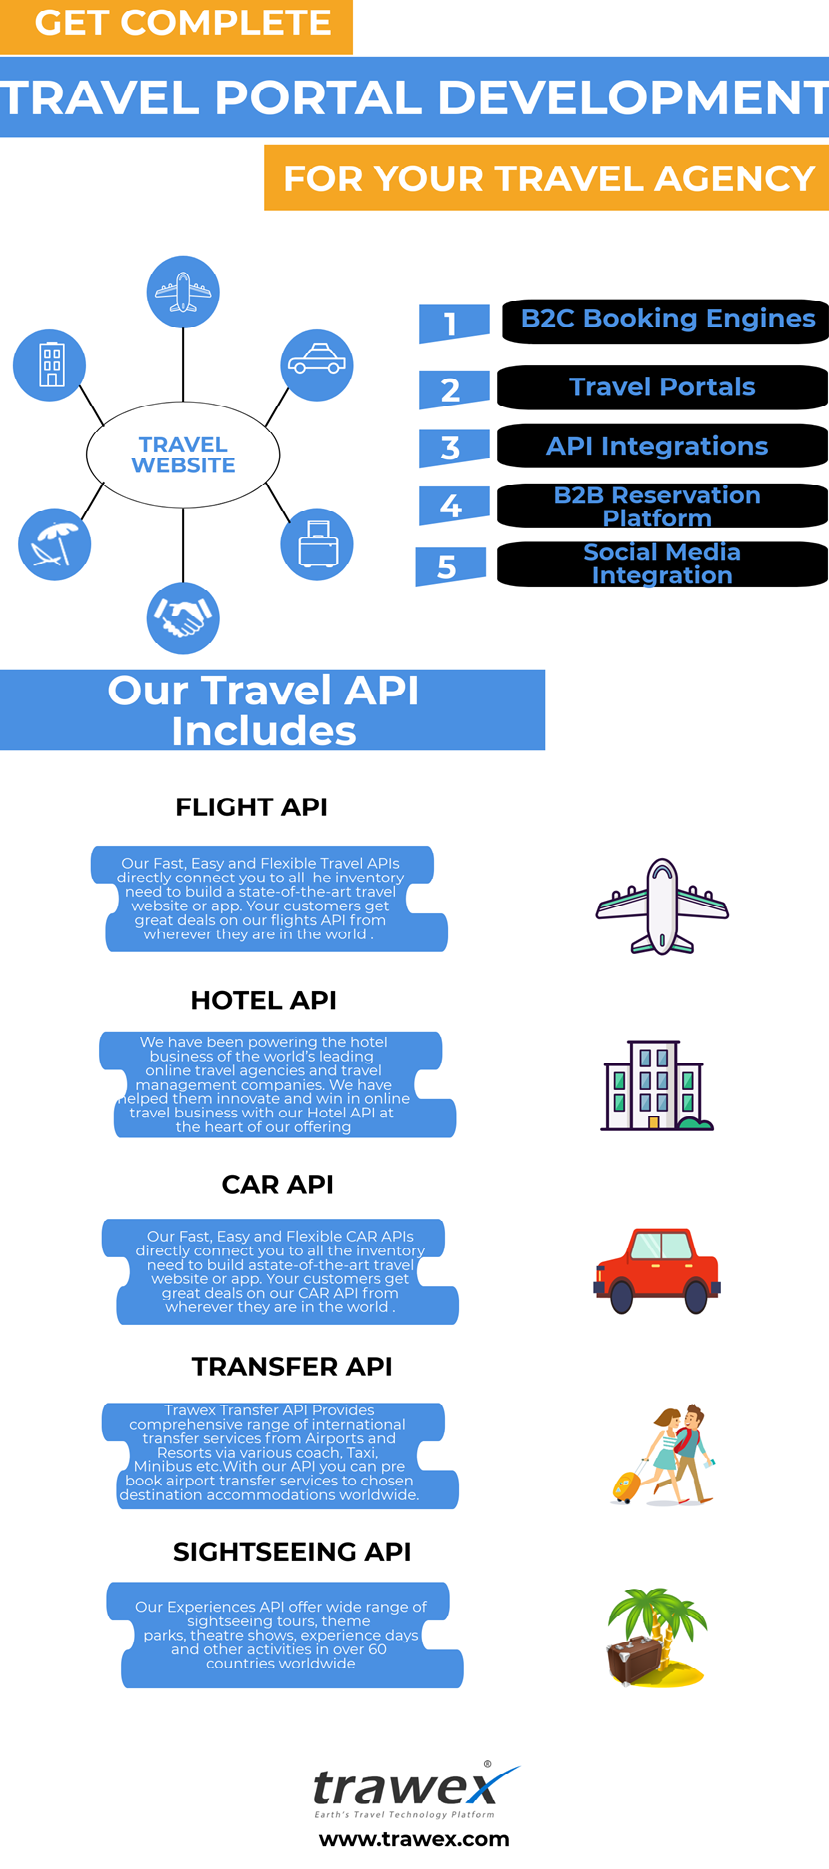 Amadeus, Travelport and Sabre GDS Systems helping travel agencies